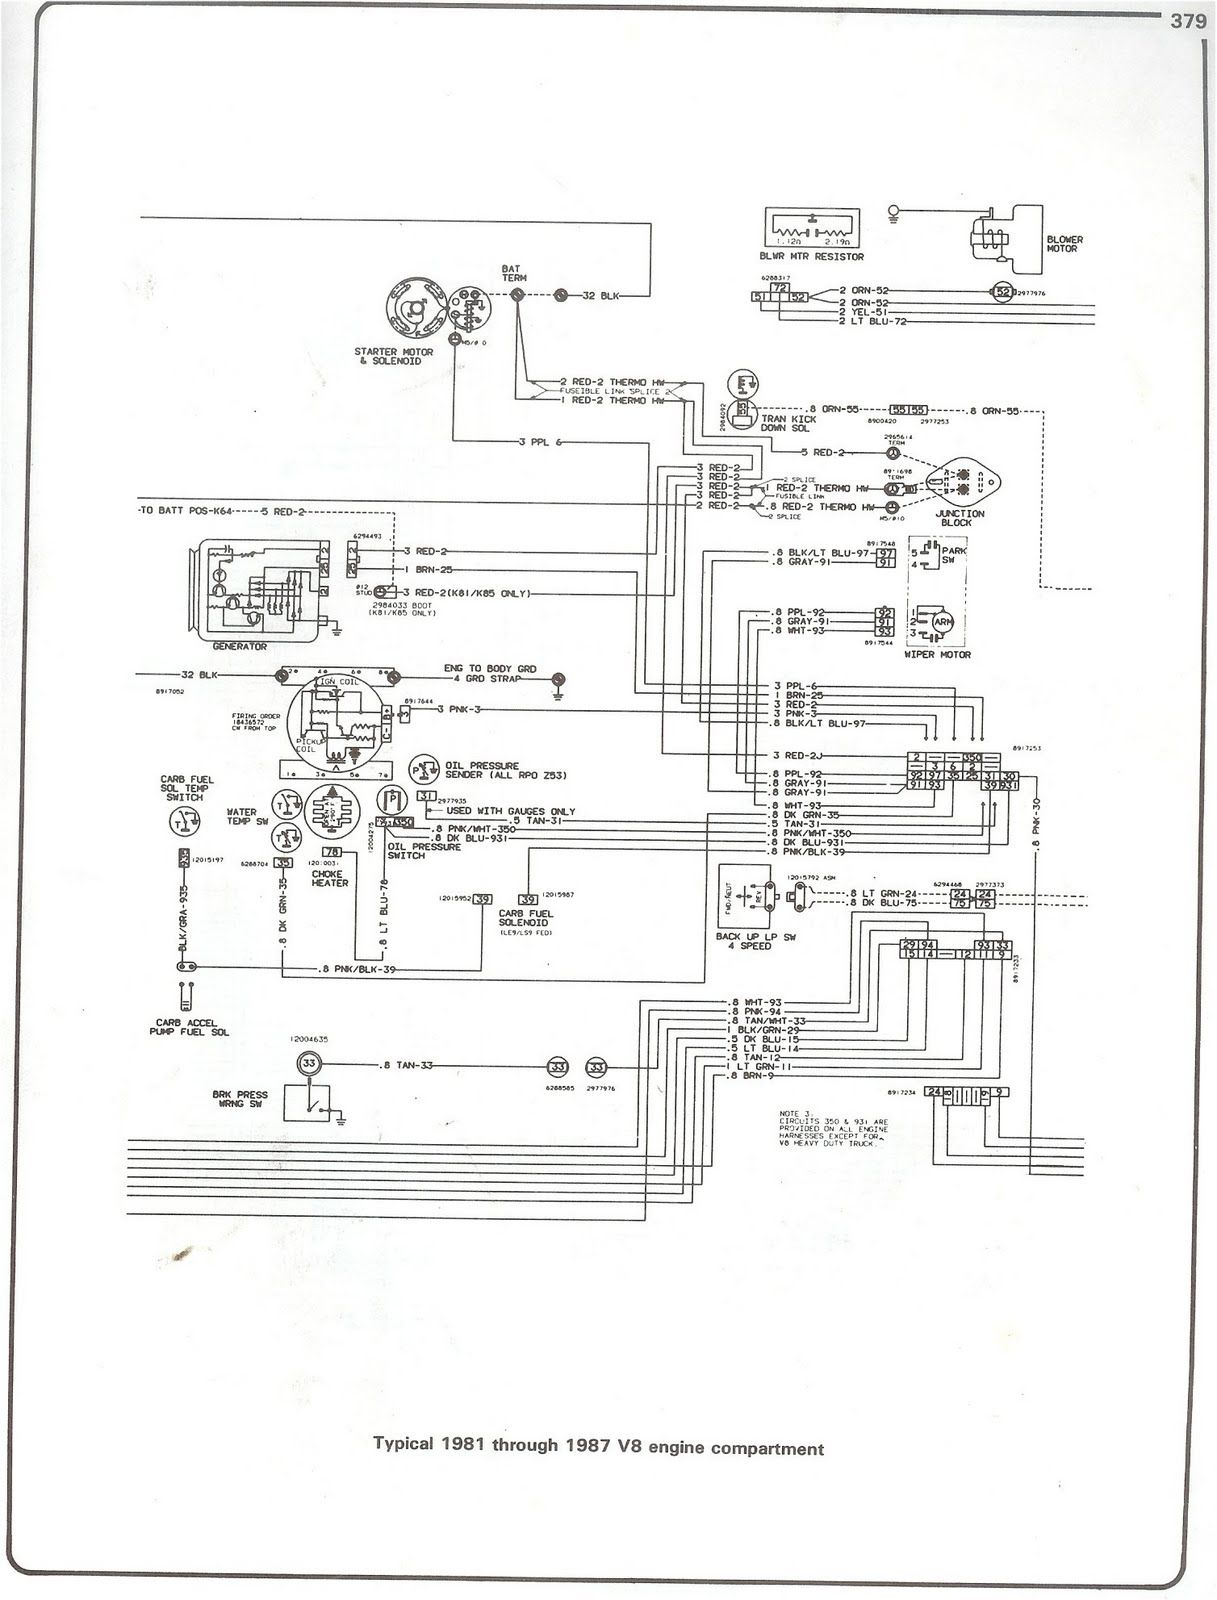 fire truck wiring diagram free picture schematic this is engine compartment wiring diagram for 1981 trough 1987  engine compartment wiring diagram